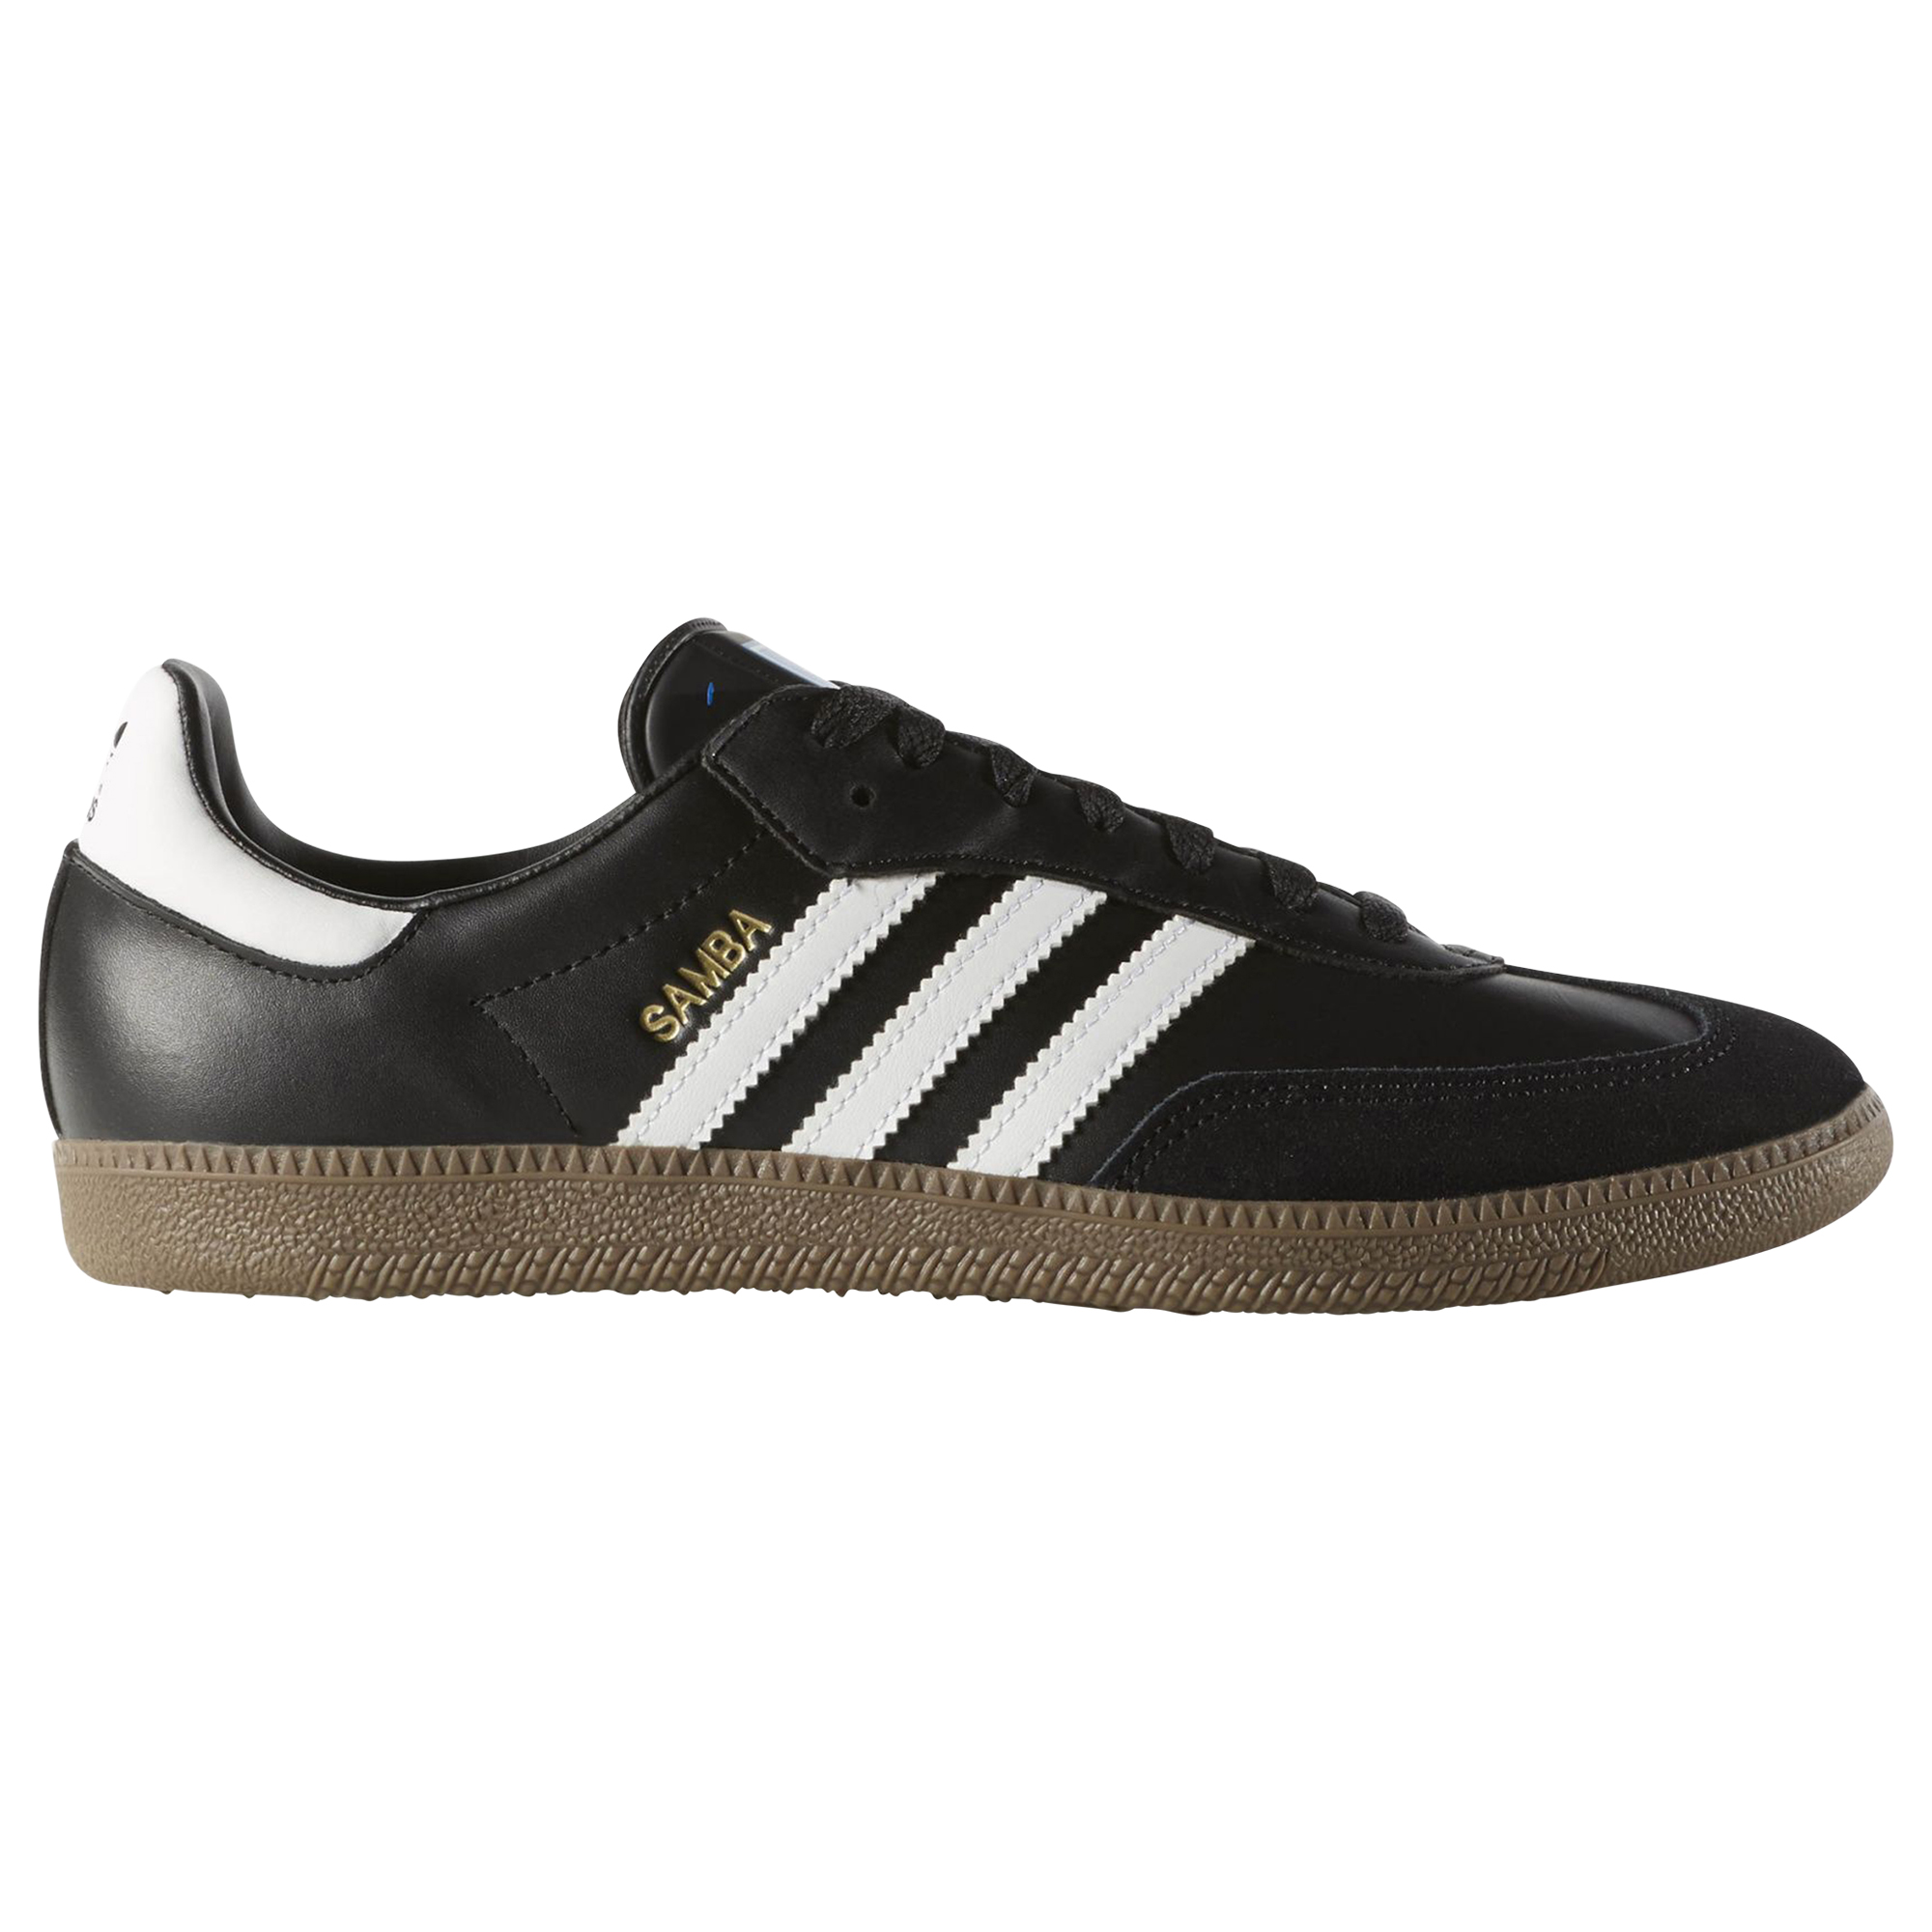 adidas samba sneaker originals schwarz wei 019000. Black Bedroom Furniture Sets. Home Design Ideas